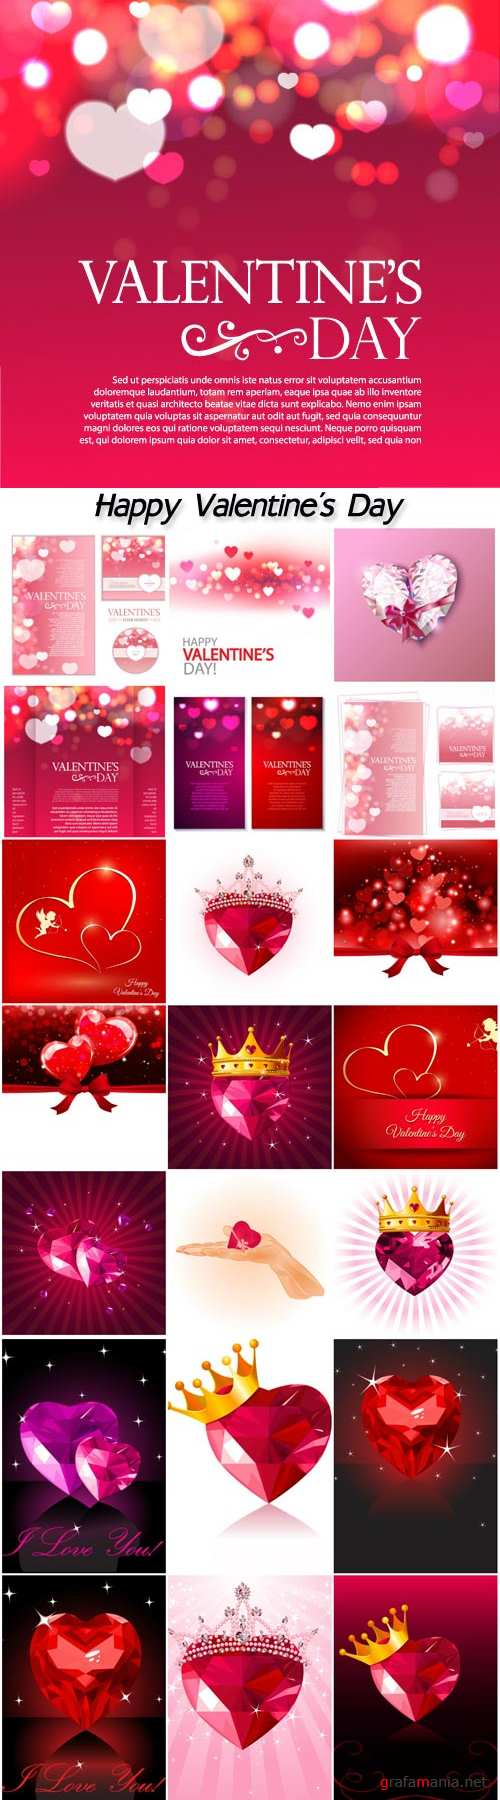 Valentine's day vector background with hearts and red ribbons